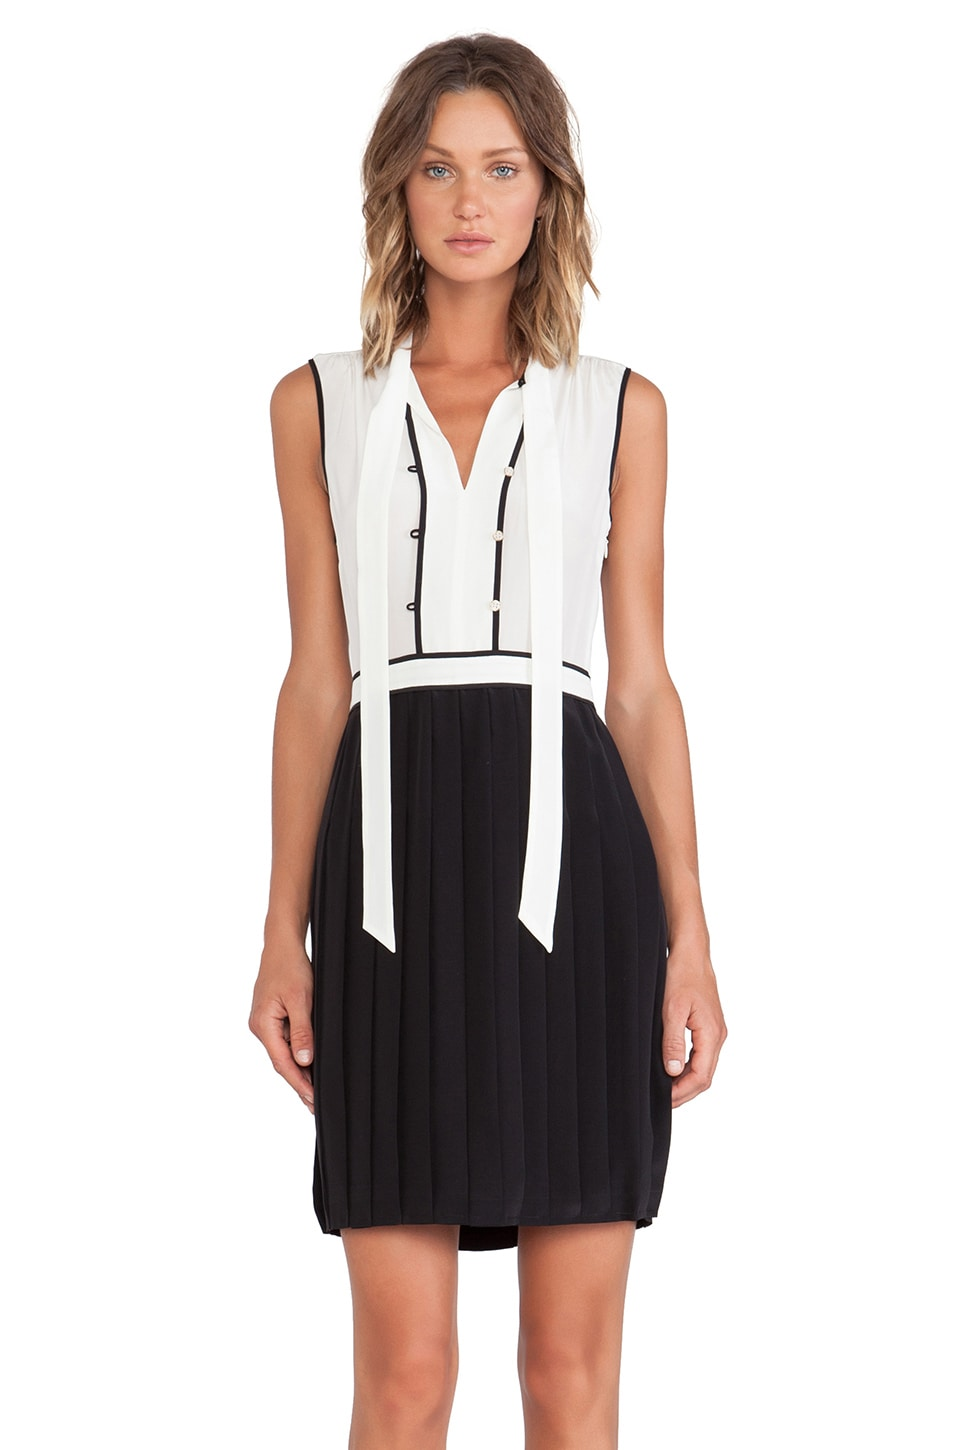 Marc by Marc Jacobs Frances Color Block Silk Dress in Black Multi